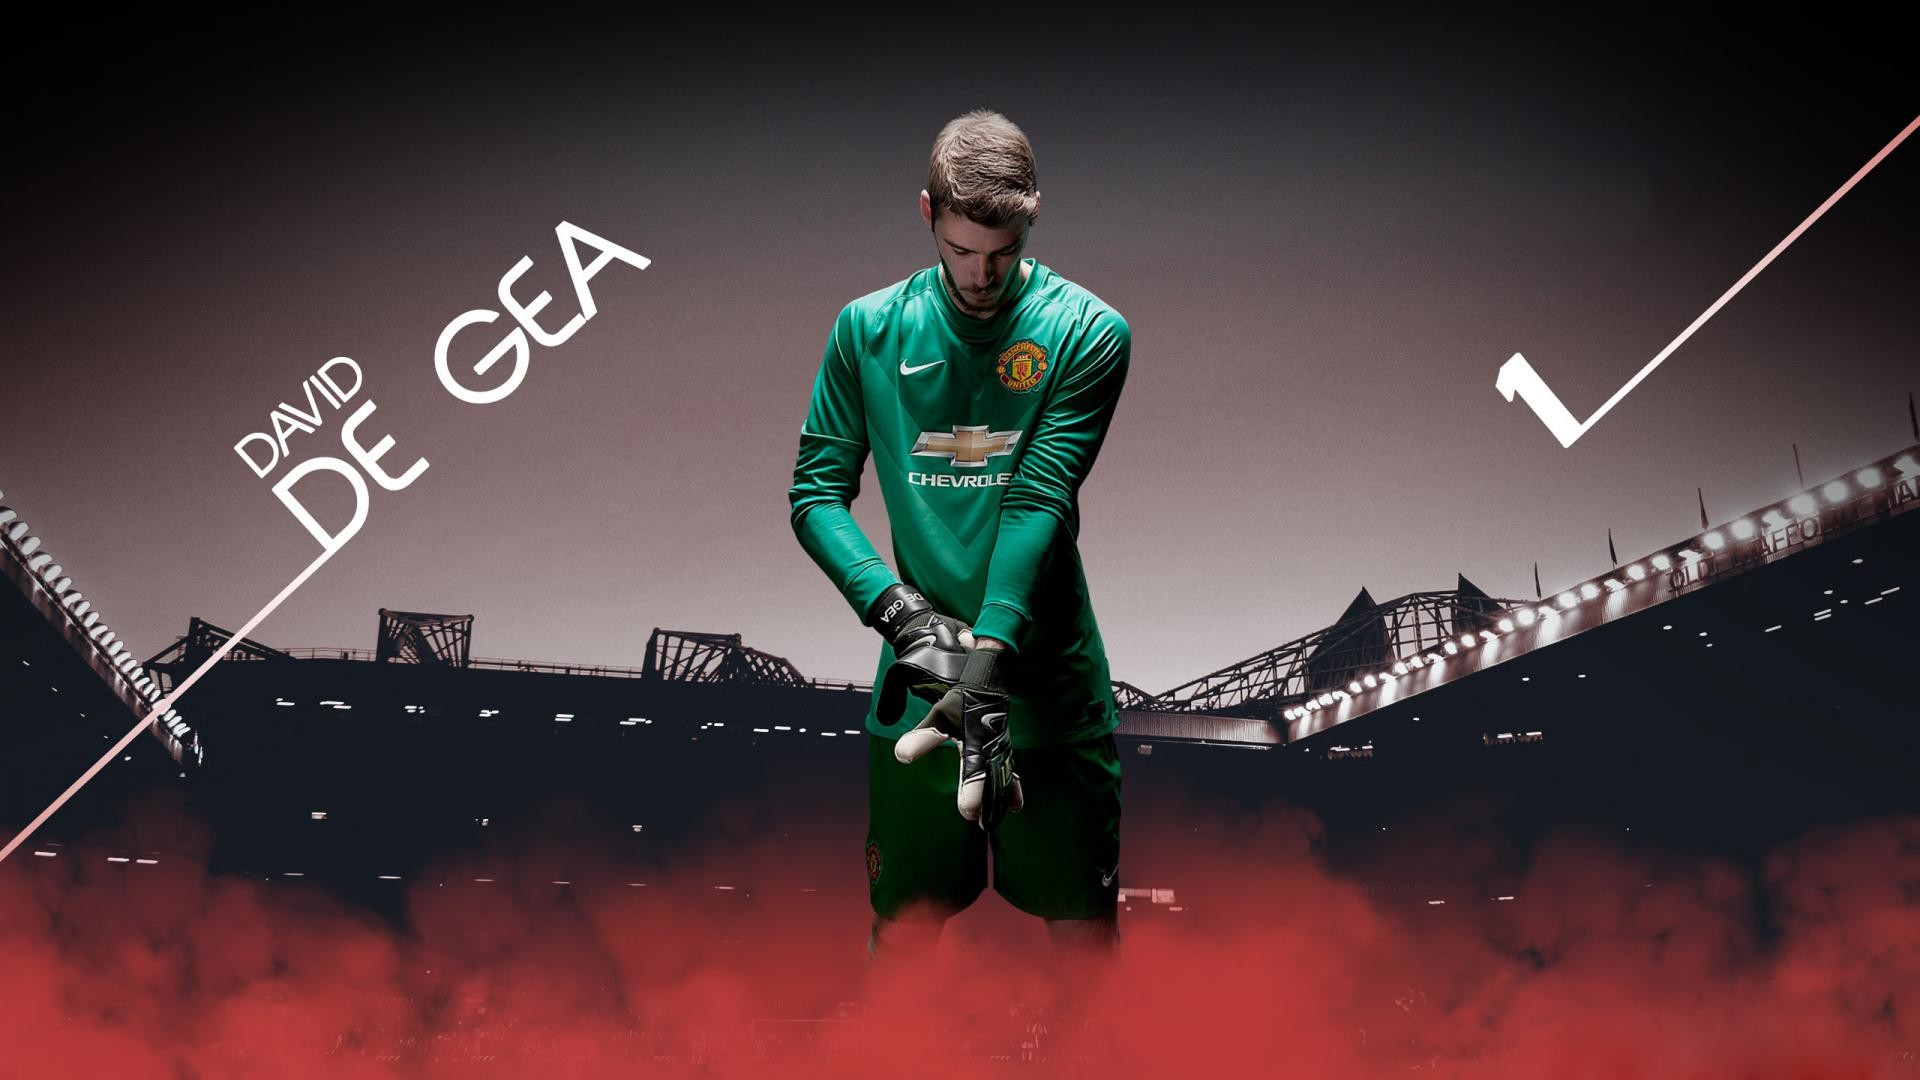 Manchester United Goalkeeper Photo for Wallpaper | HD Wallpapers for .